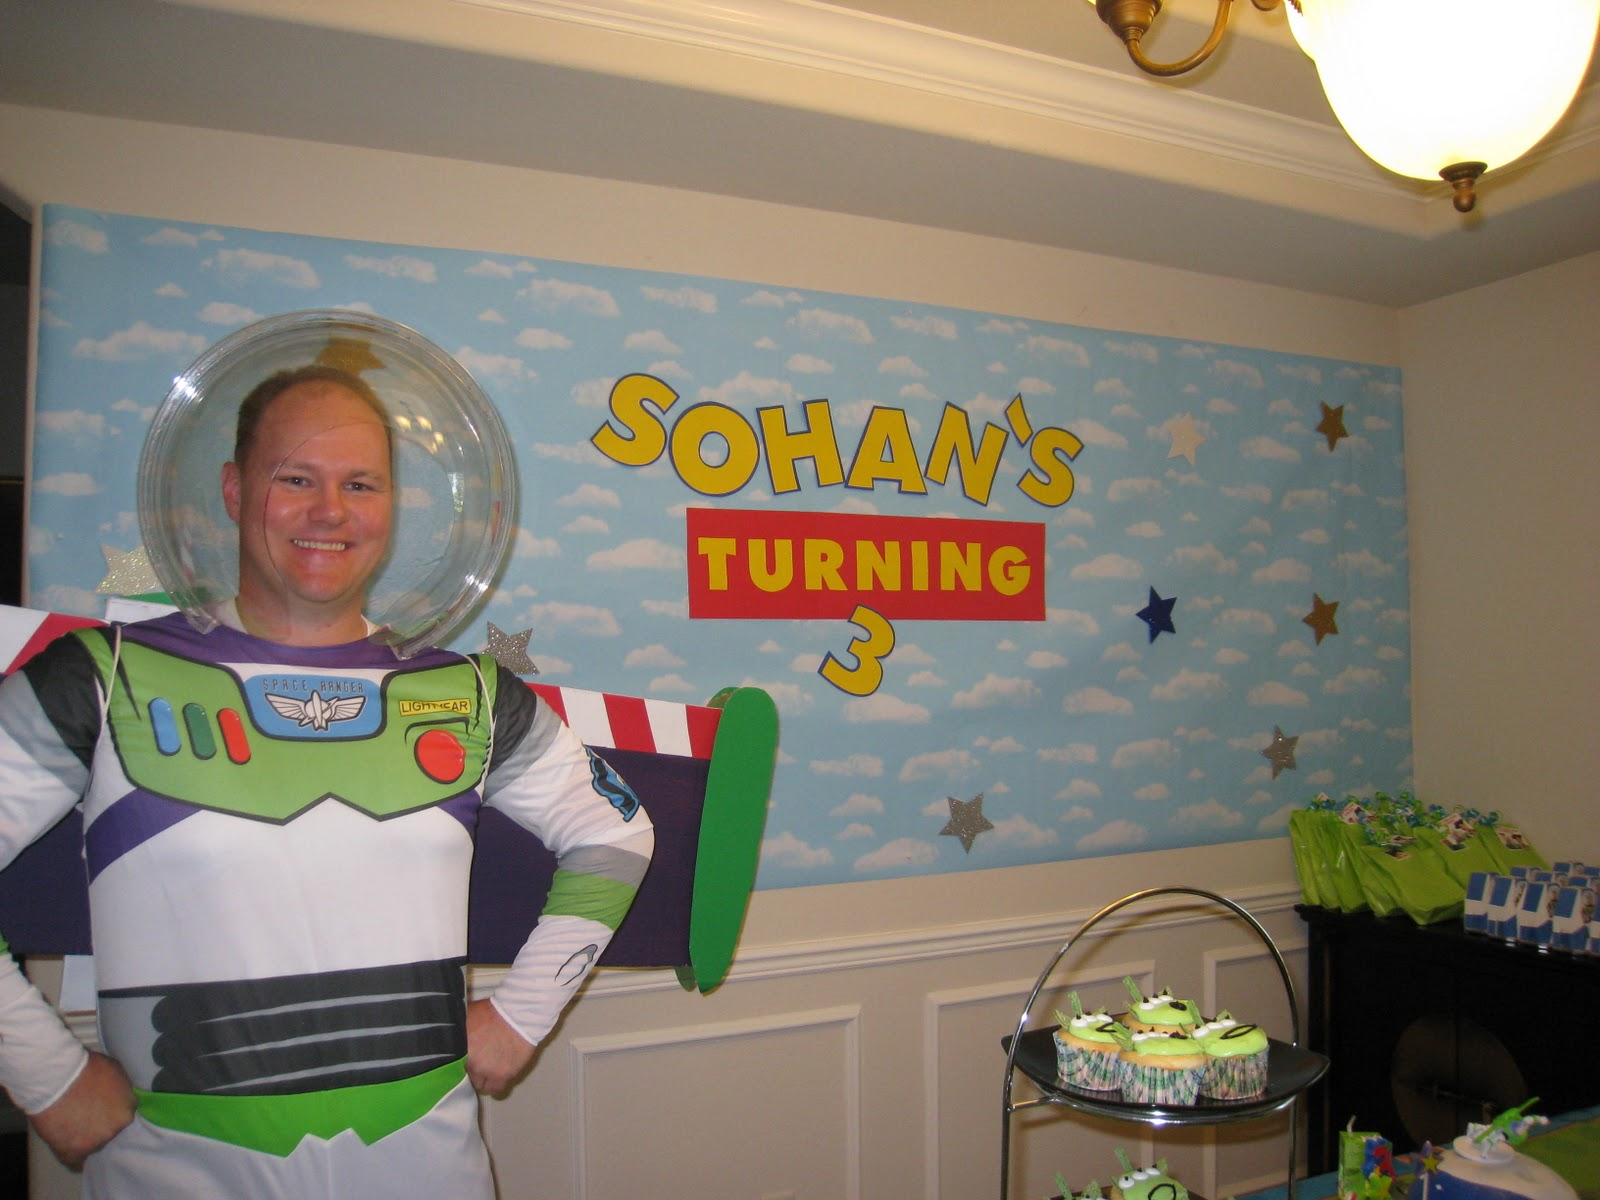 The party wall toy story party i made a custom banner reading sohans turning 3 based on the toy story movie logo amipublicfo Image collections